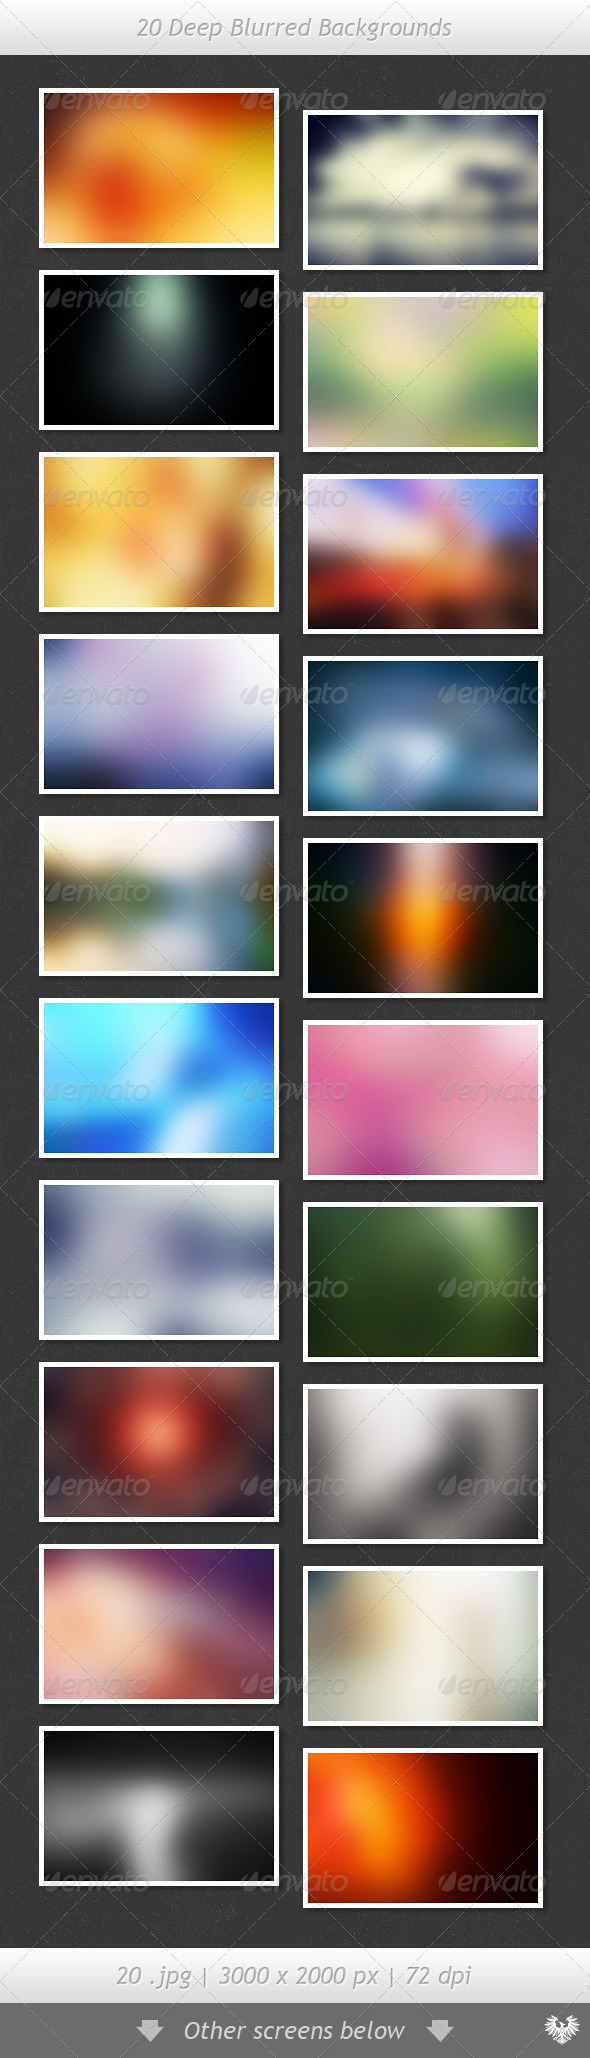 20 Deep Blurred Backgrounds - Abstract Backgrounds